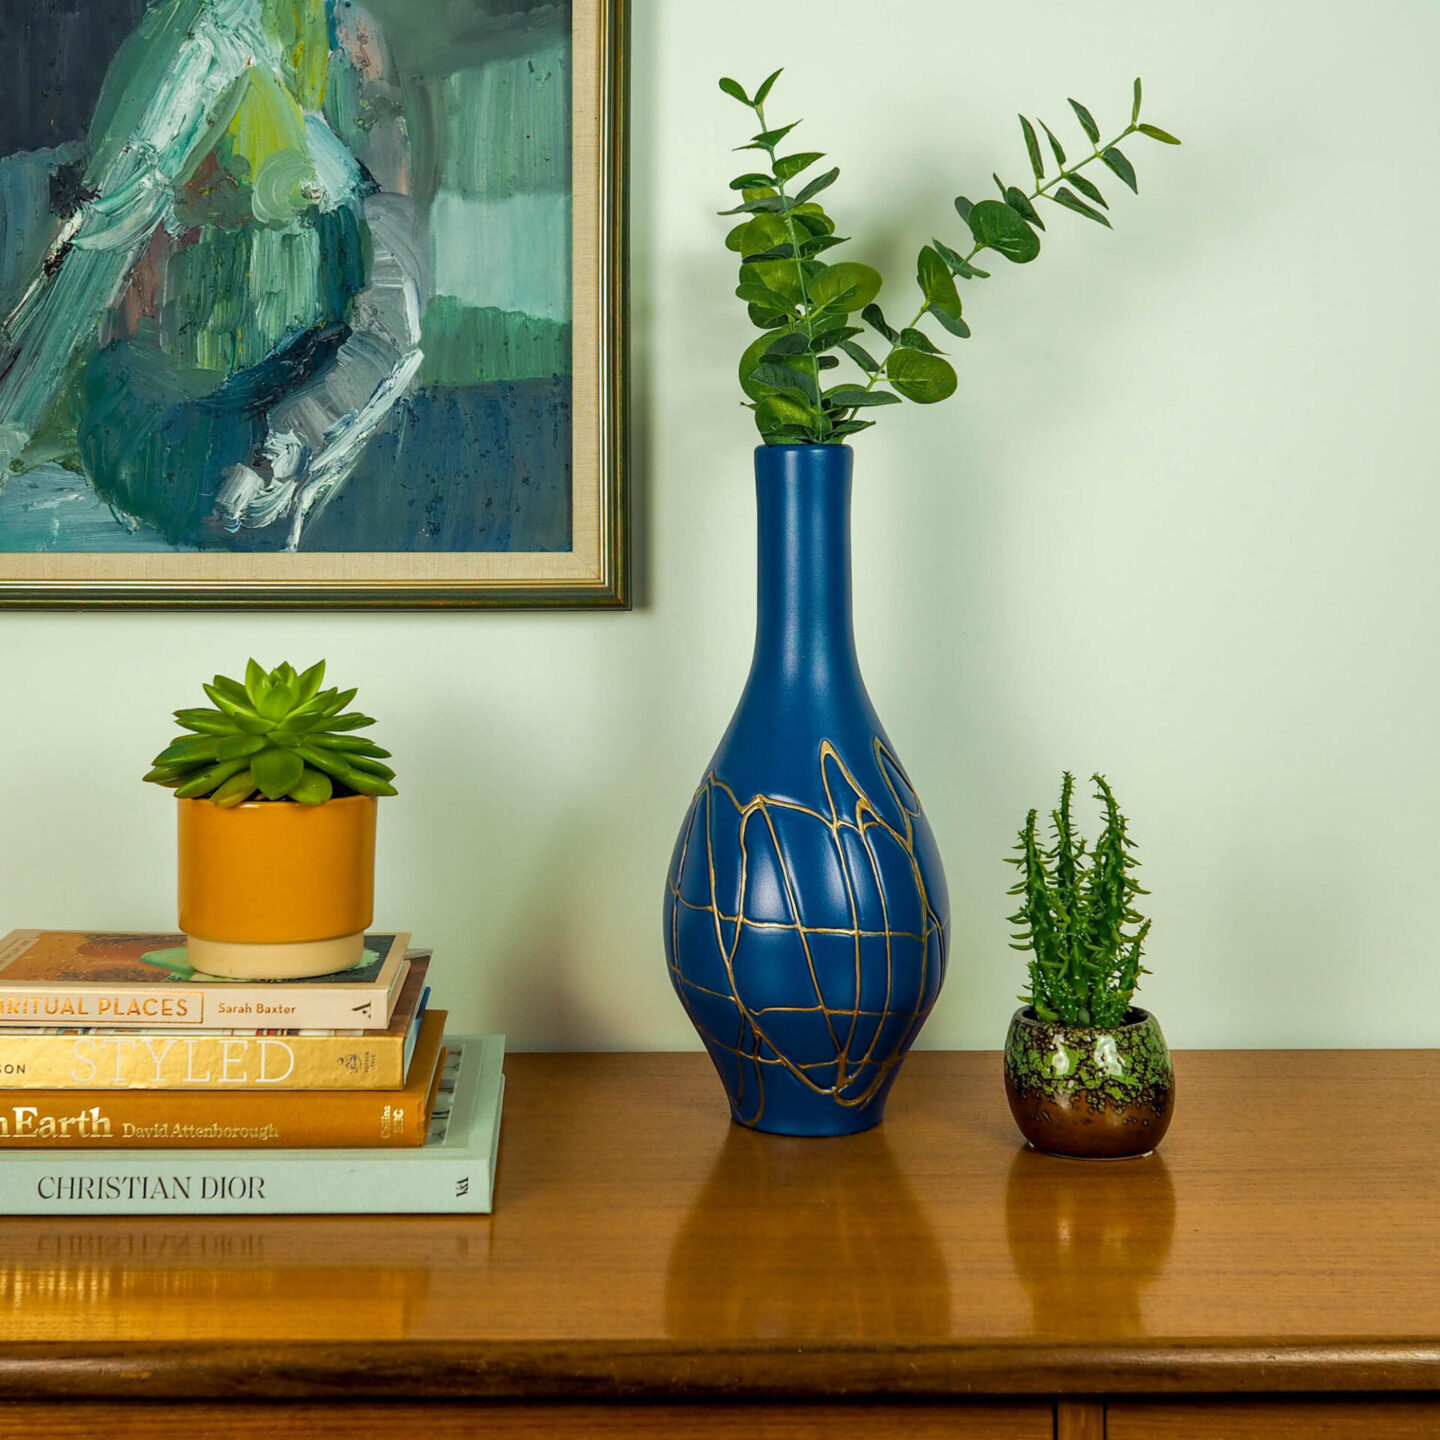 Not Lamb Home: Bold, kitsch upcycled homewares, vintage and decor | Deep Blue and Handpainted Gold Bud Vase